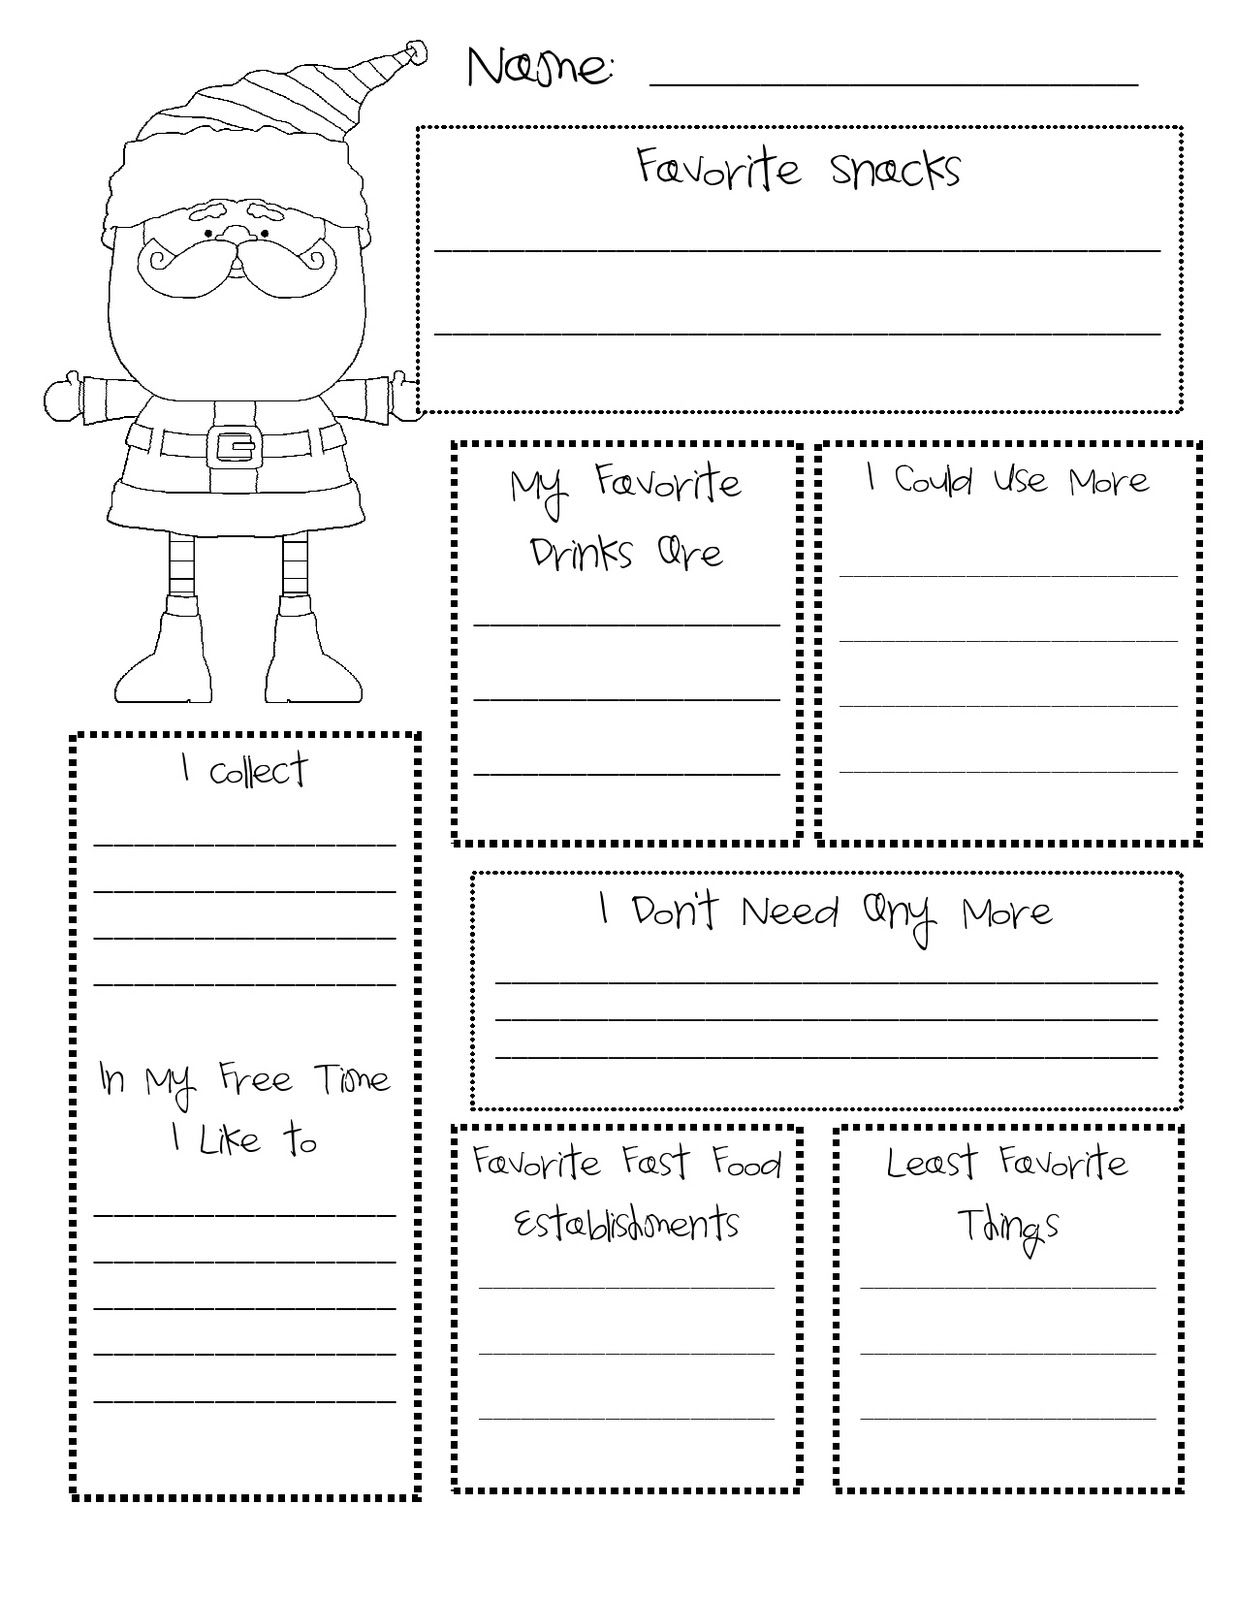 Secret santa questionnaire my easy folder holders postese secret santa questionnaire my easy folder holders postese have popped up pronofoot35fo Images